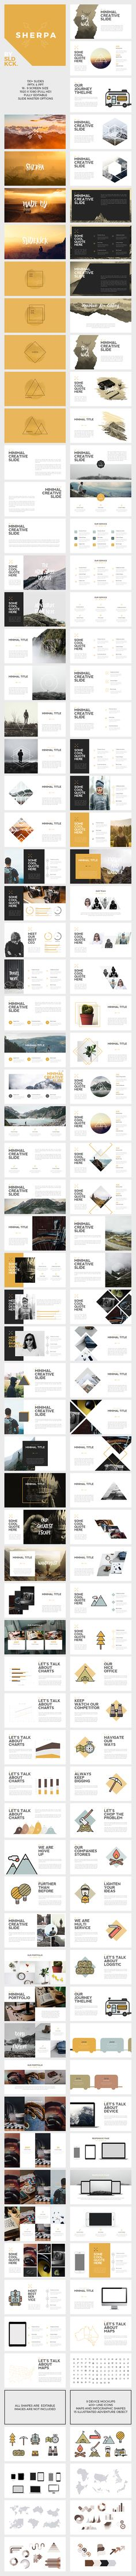 SHERPA - Hipster Powerpoint Presentation Template. Download here: http://graphicriver.net/item/sherpa-hipster-powerpoint-presentation/15721262?ref=ksioks                                                                                                                                                                                 More